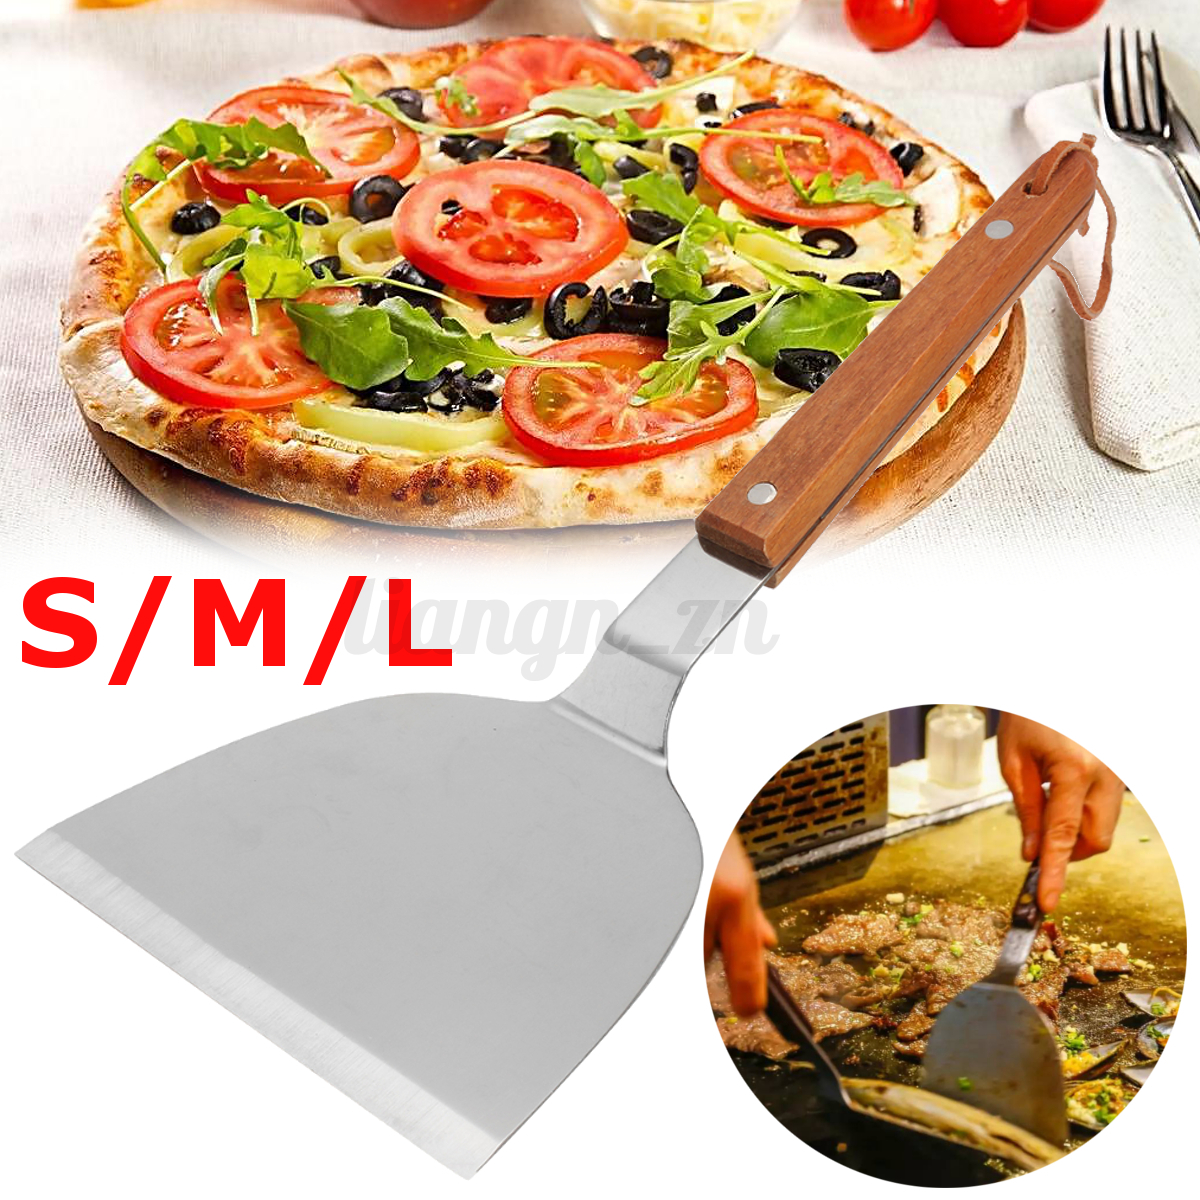 inox spatule g teau p tisserie pizza coupe raclette lame outil cuisine ustensile ebay. Black Bedroom Furniture Sets. Home Design Ideas